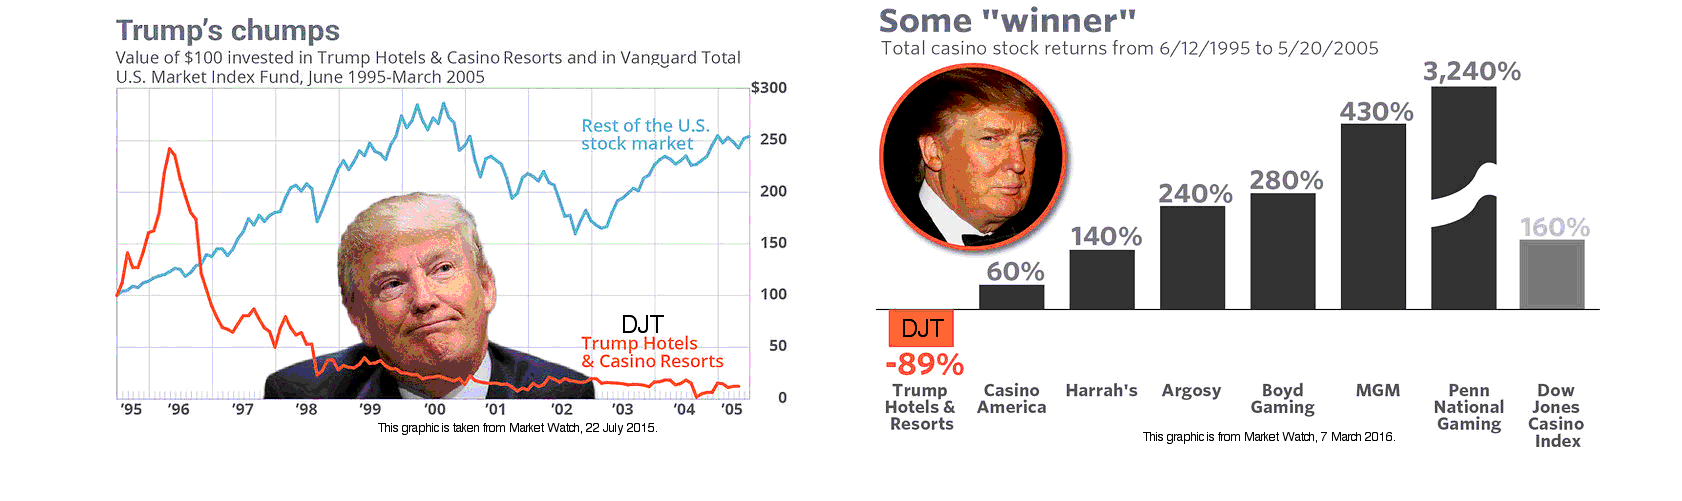 Two plots of DJT stock performance